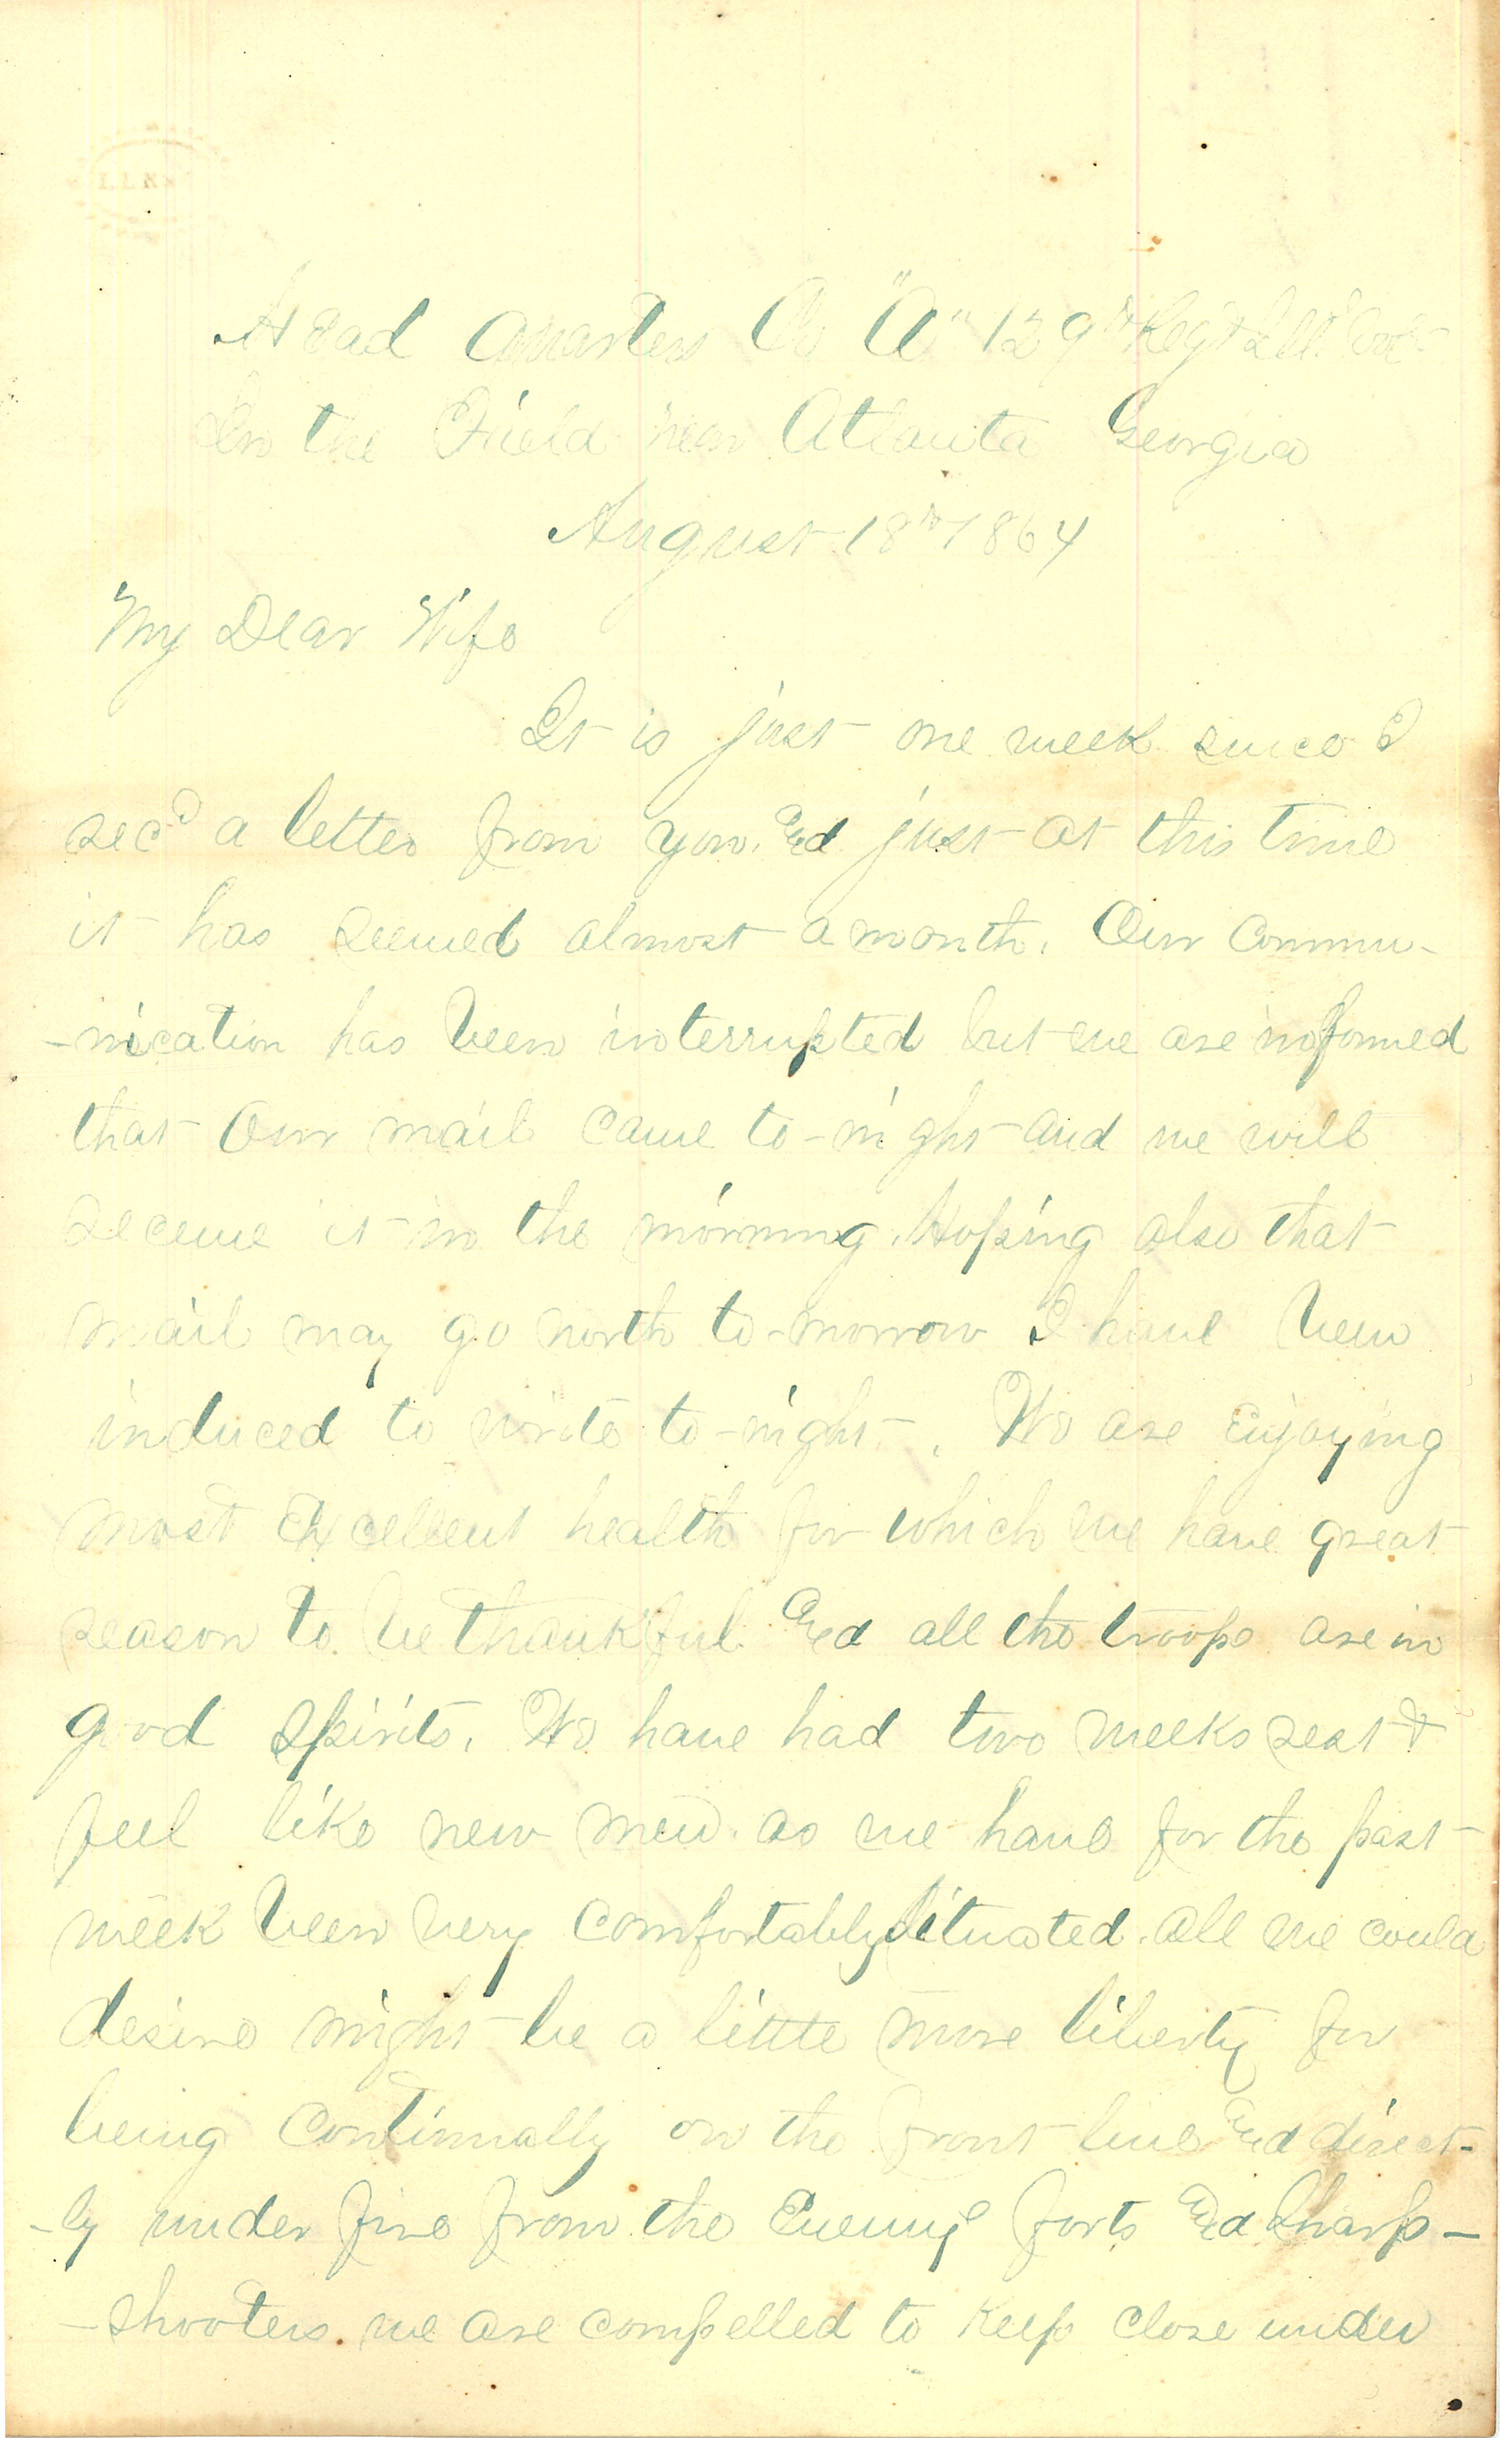 Joseph Culver Letter, August 18, 1864, Page 1